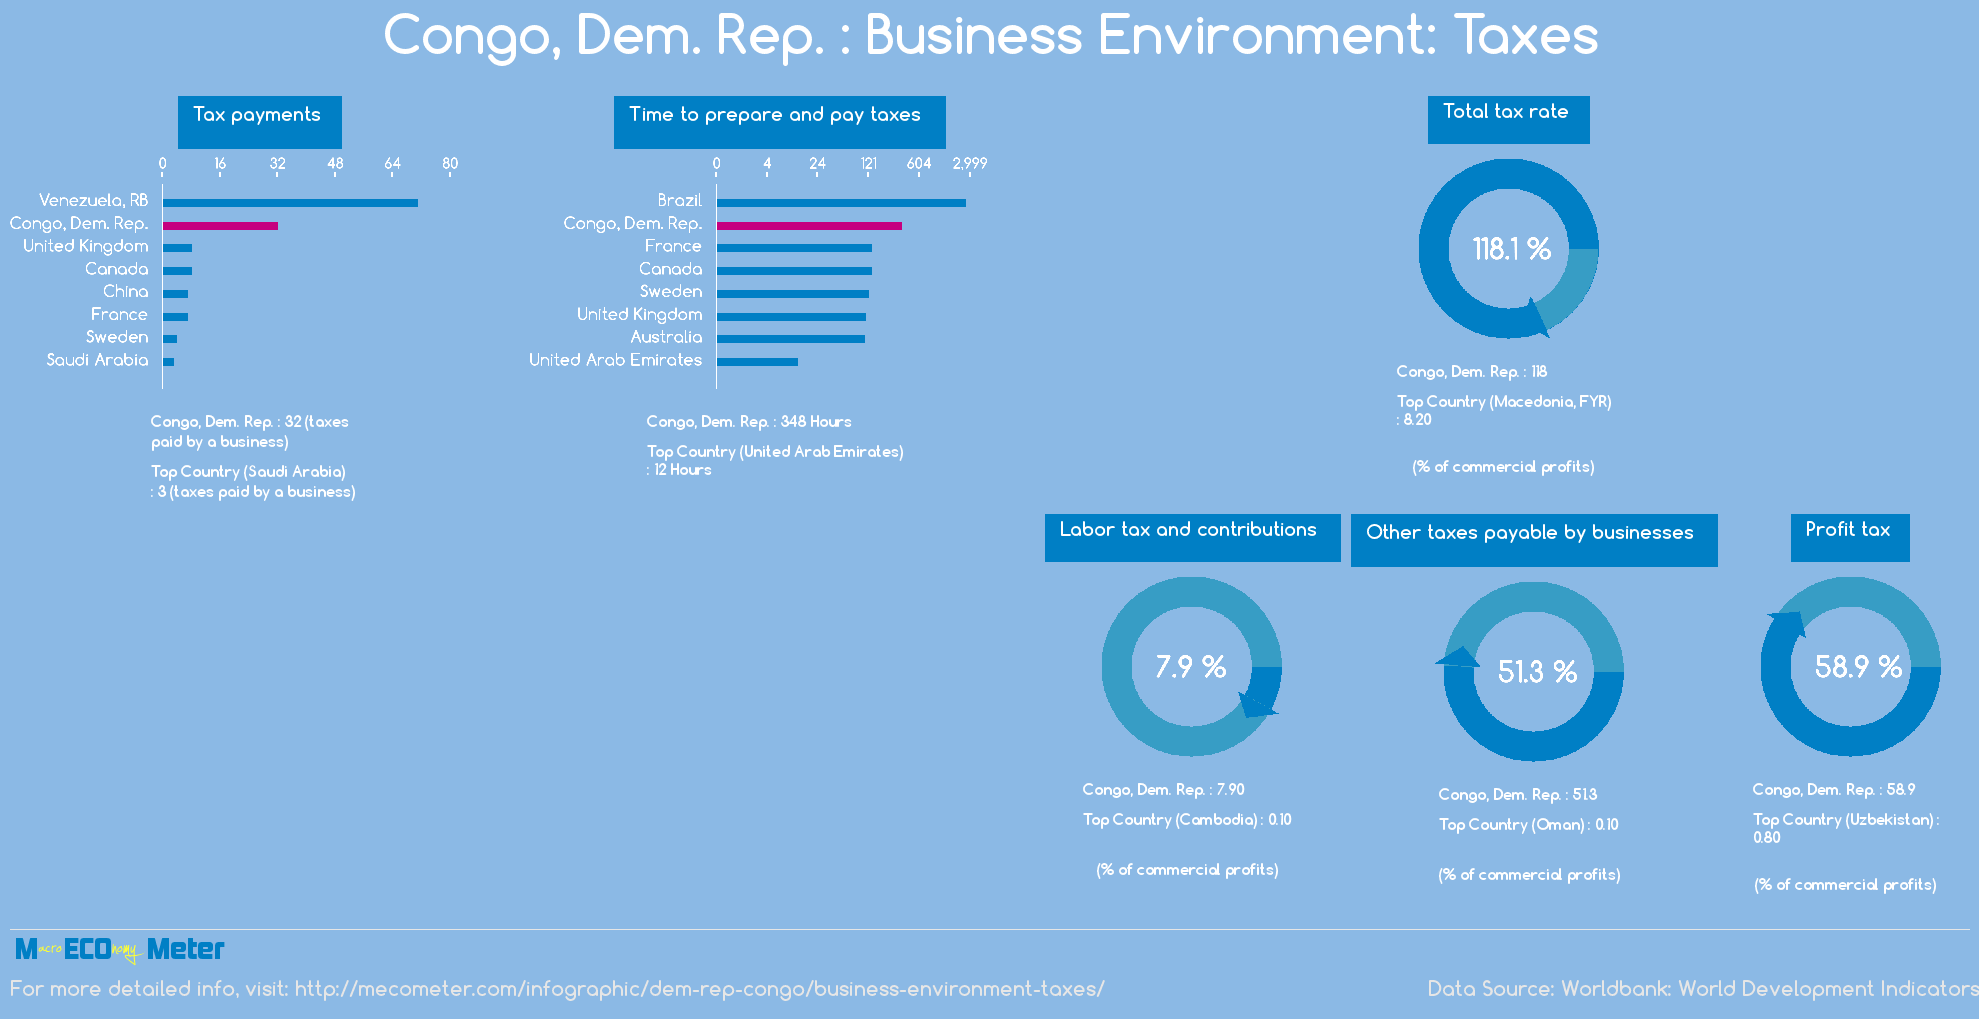 Congo, Dem. Rep. : Business Environment: Taxes